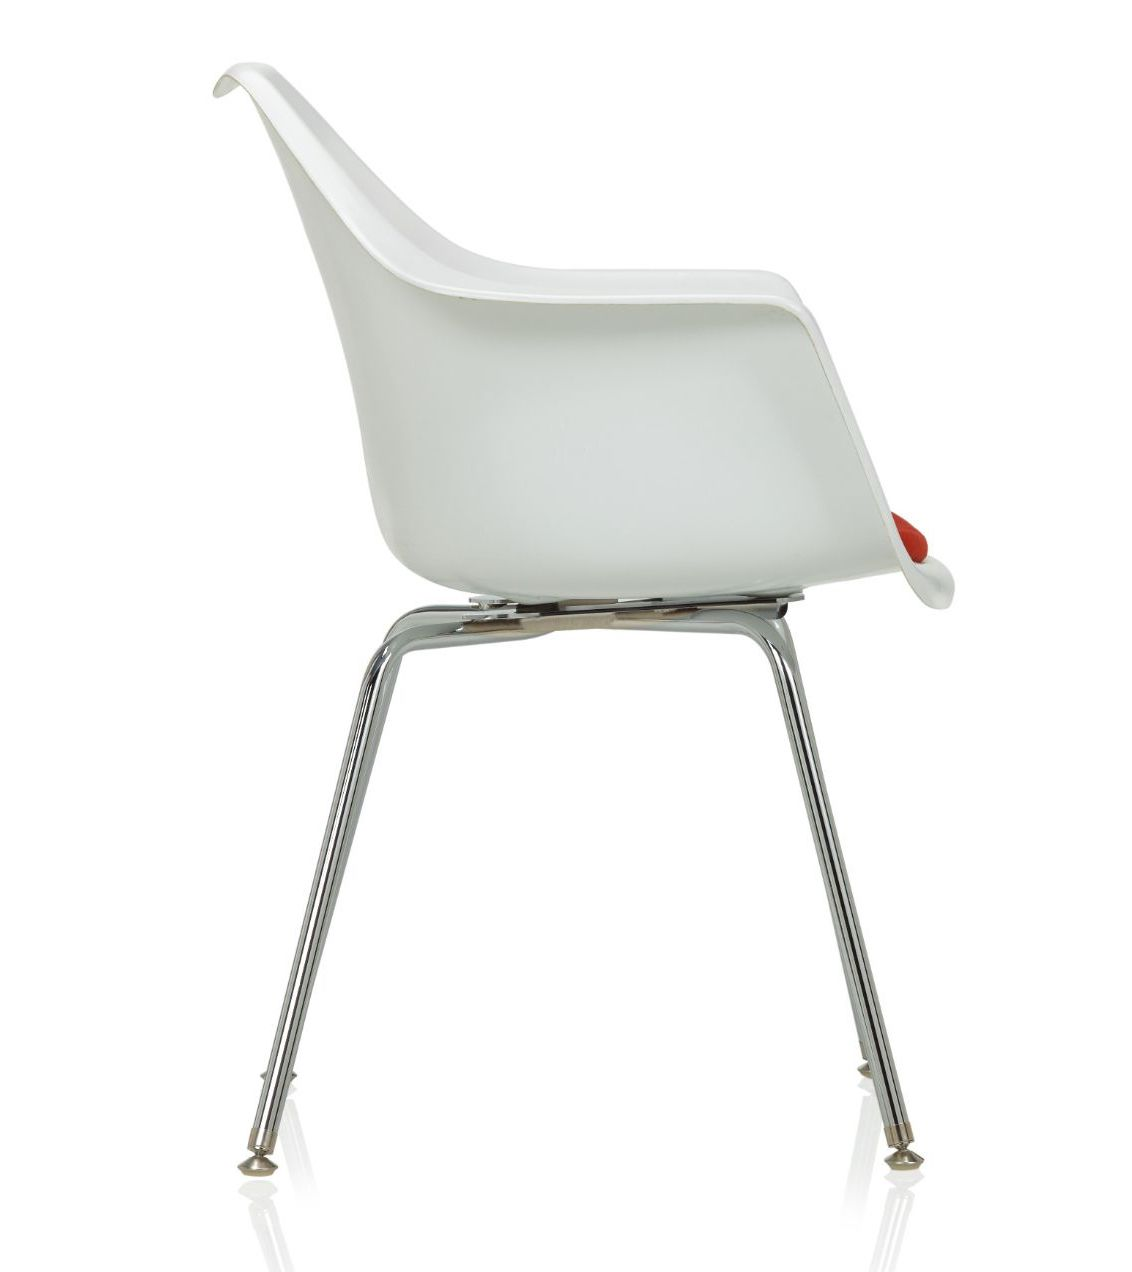 ki jubi guest chair - side view